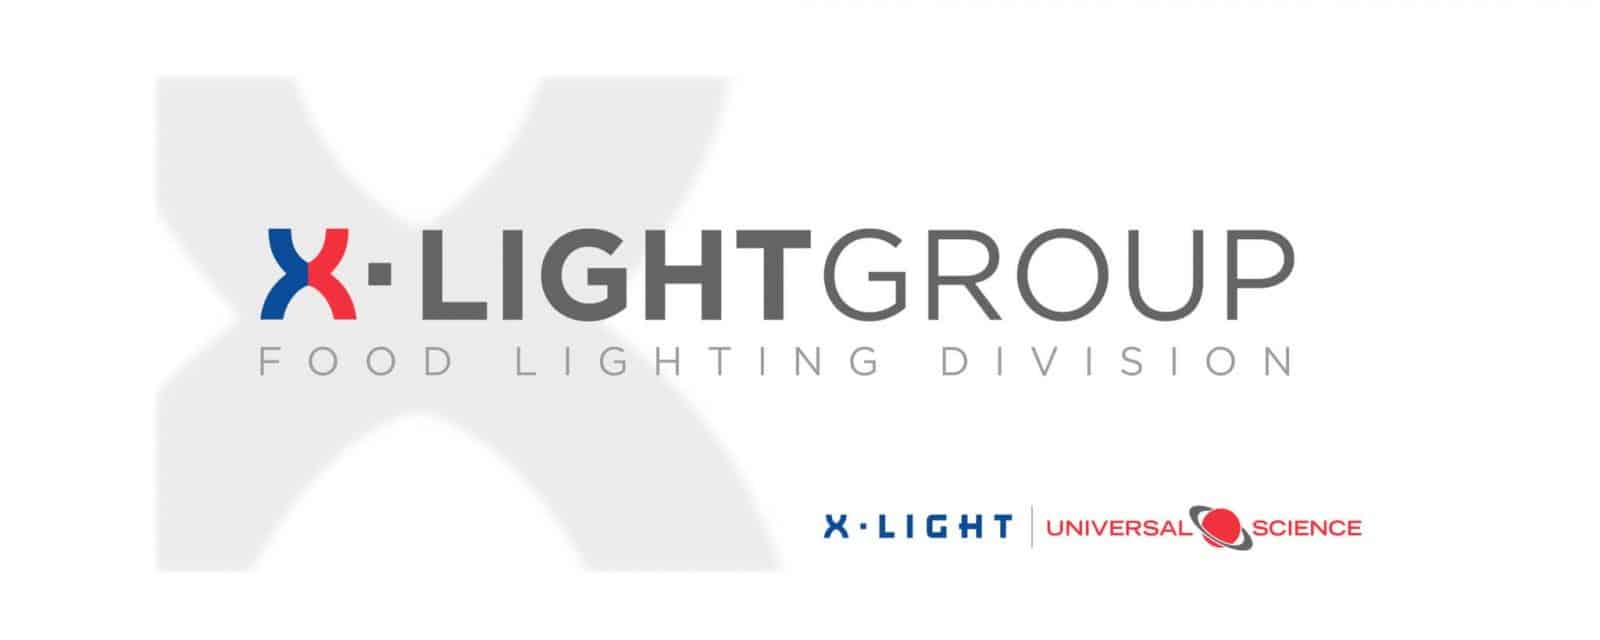 X Light Group – Food Lighting